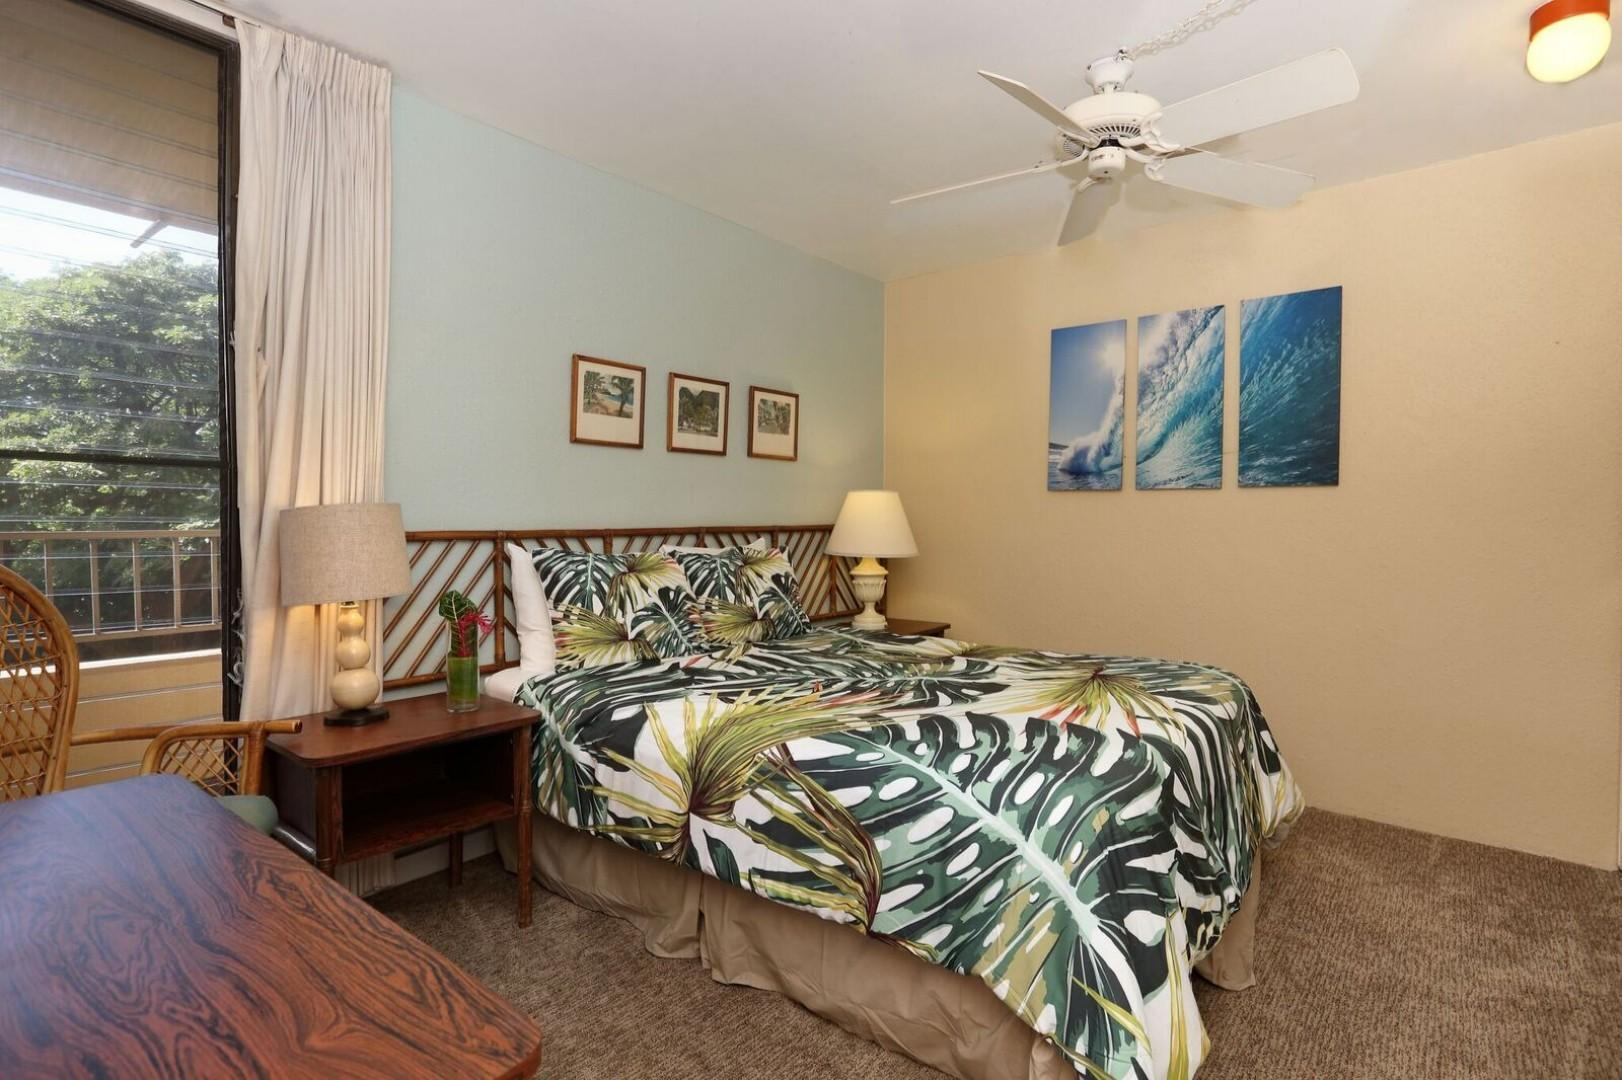 Queen bed in a relaxed atmosphere